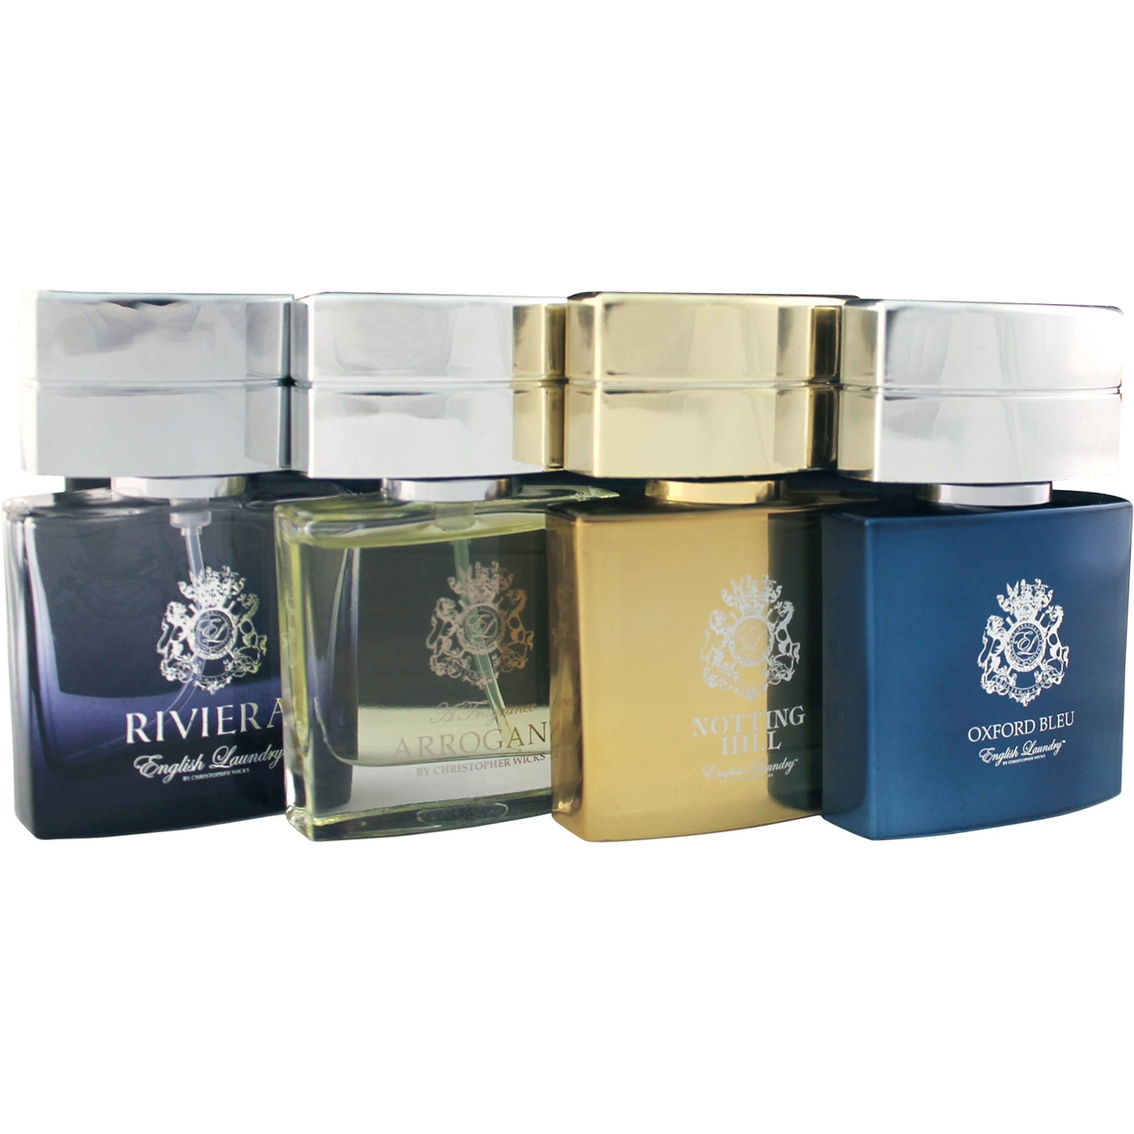 English Laundry By Christopher Wicks Coffret Set For Men